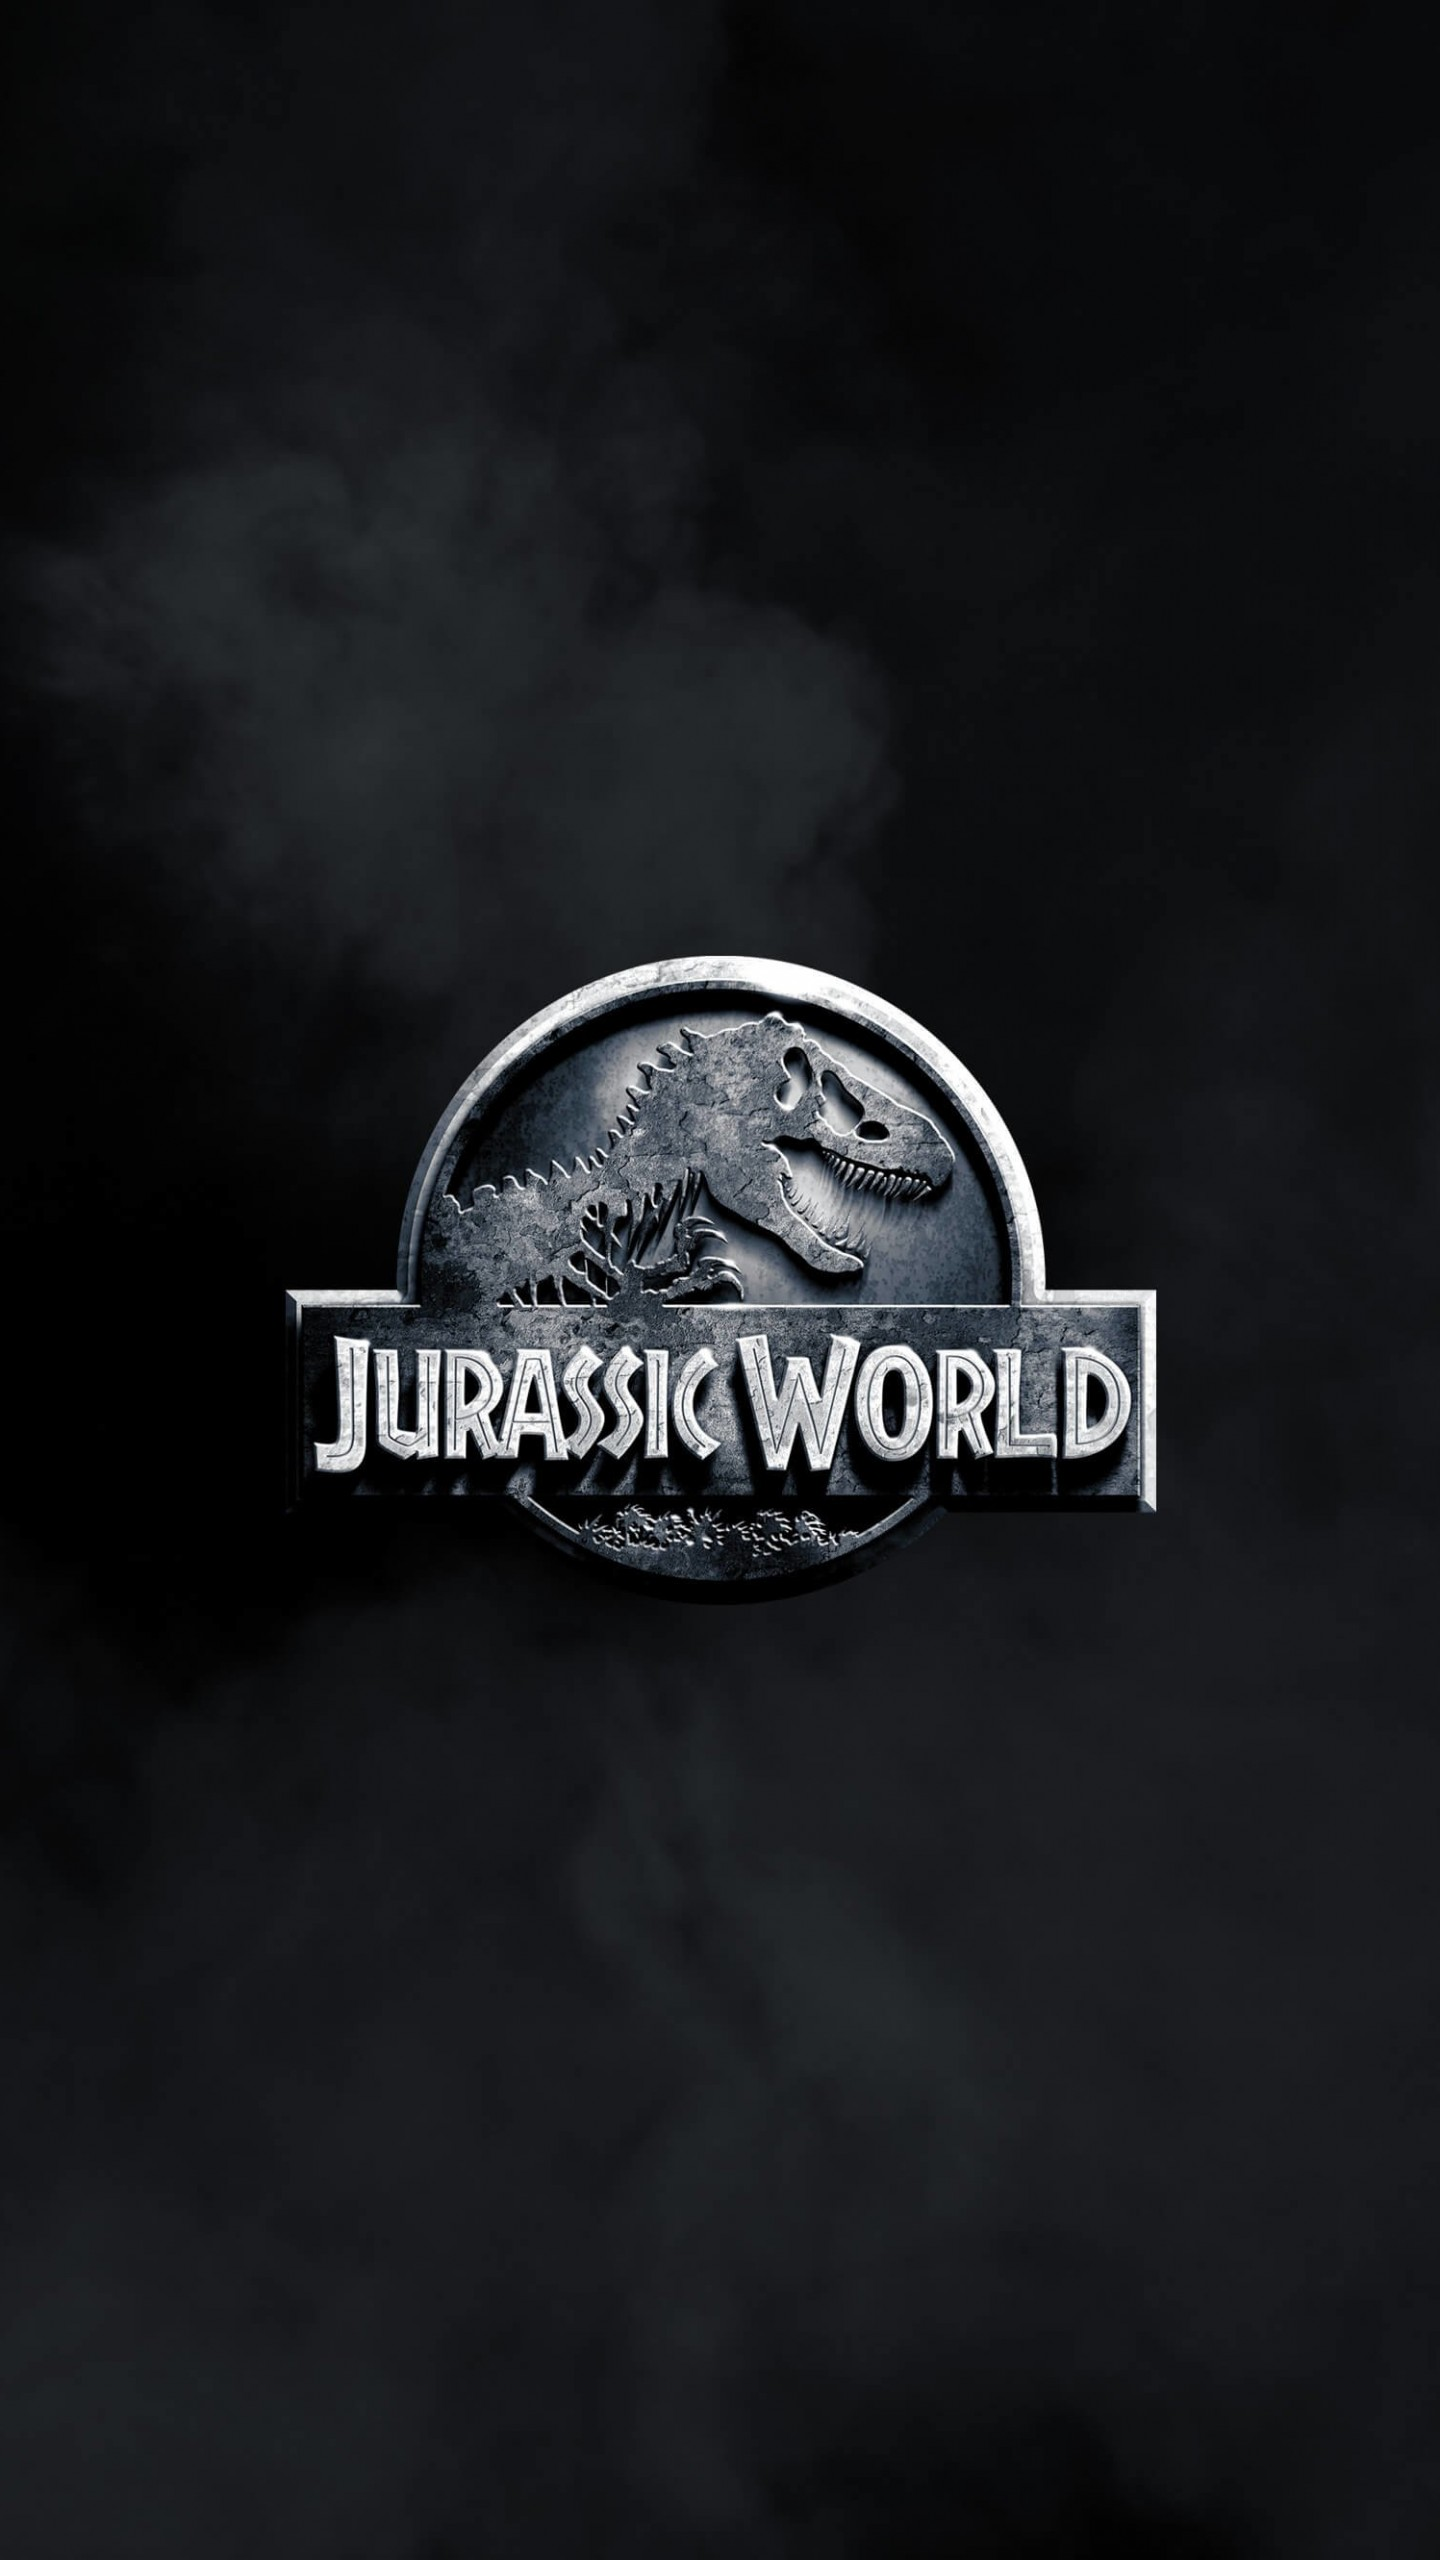 Jurassic World Wallpaper for SAMSUNG Galaxy S6